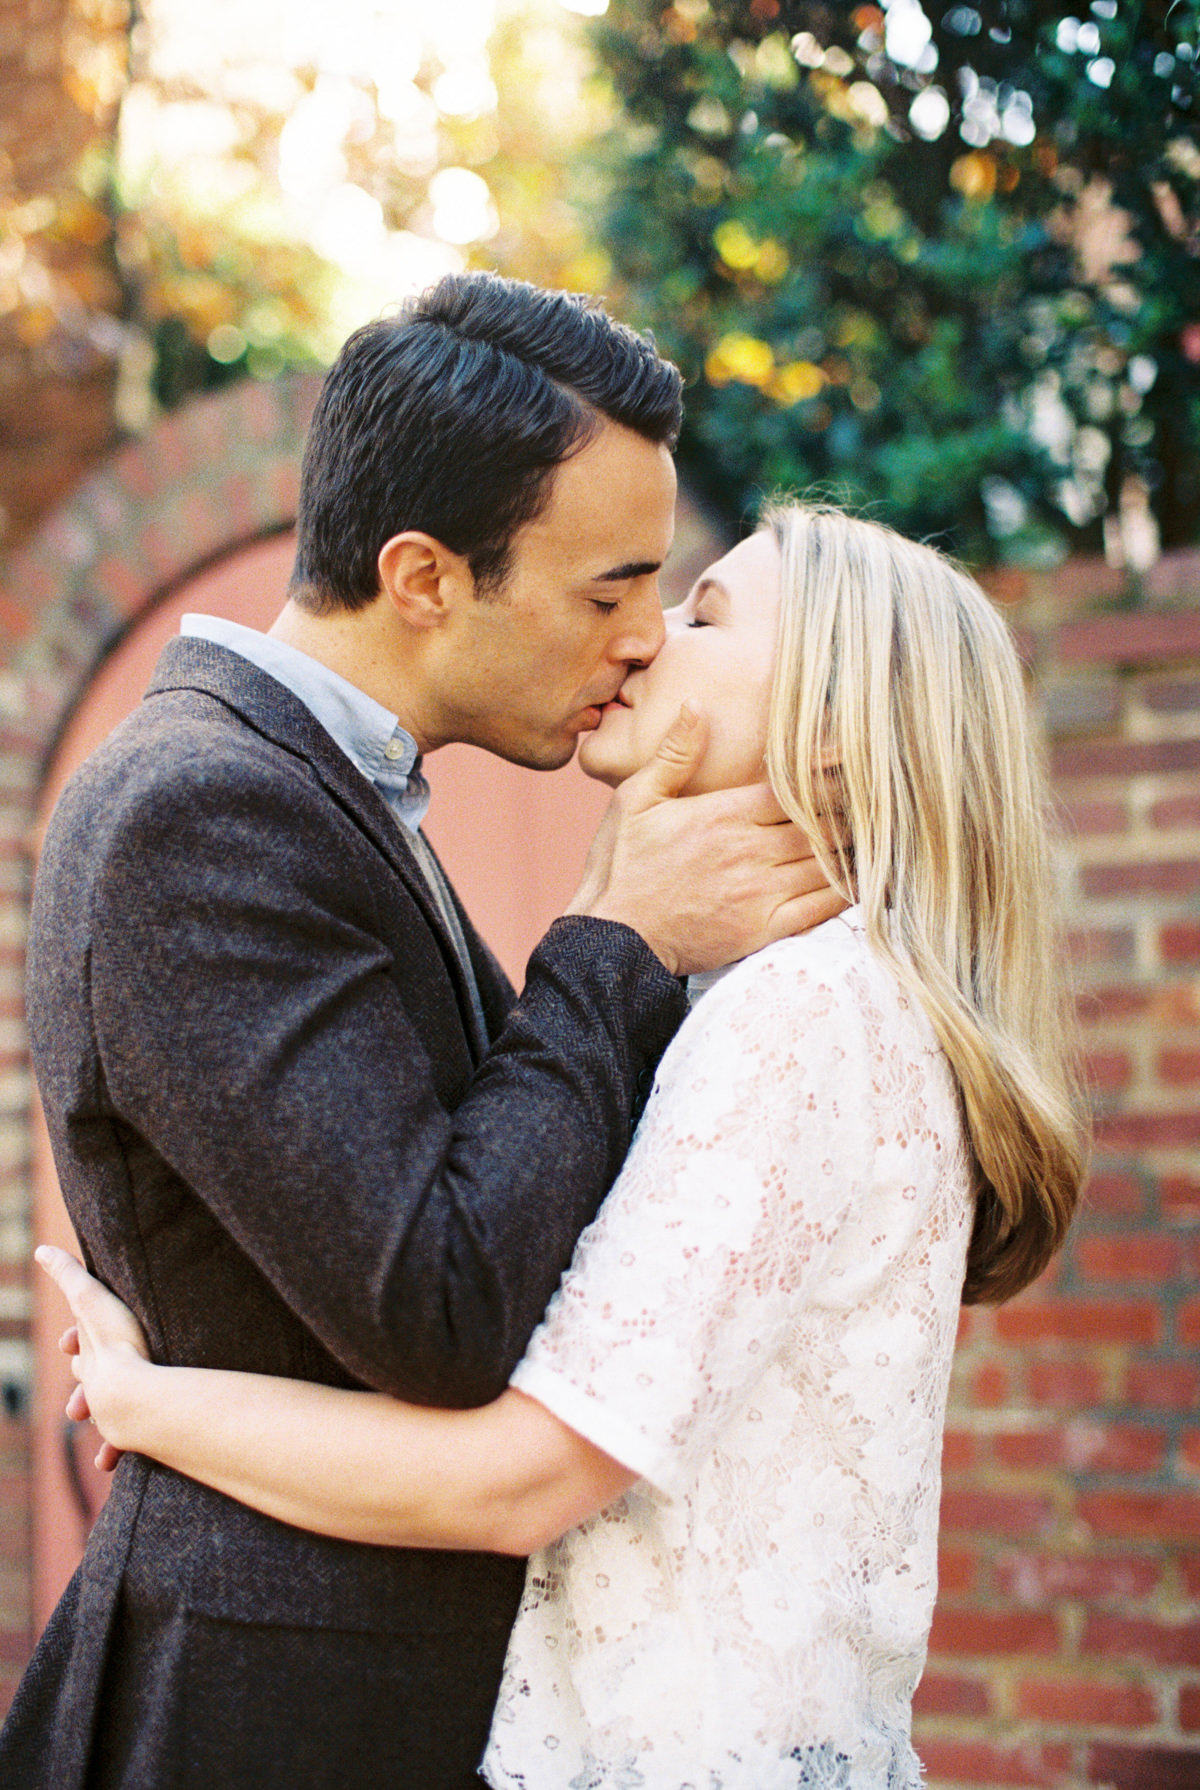 romantic kiss engagement photo by Matoli Keely Photography